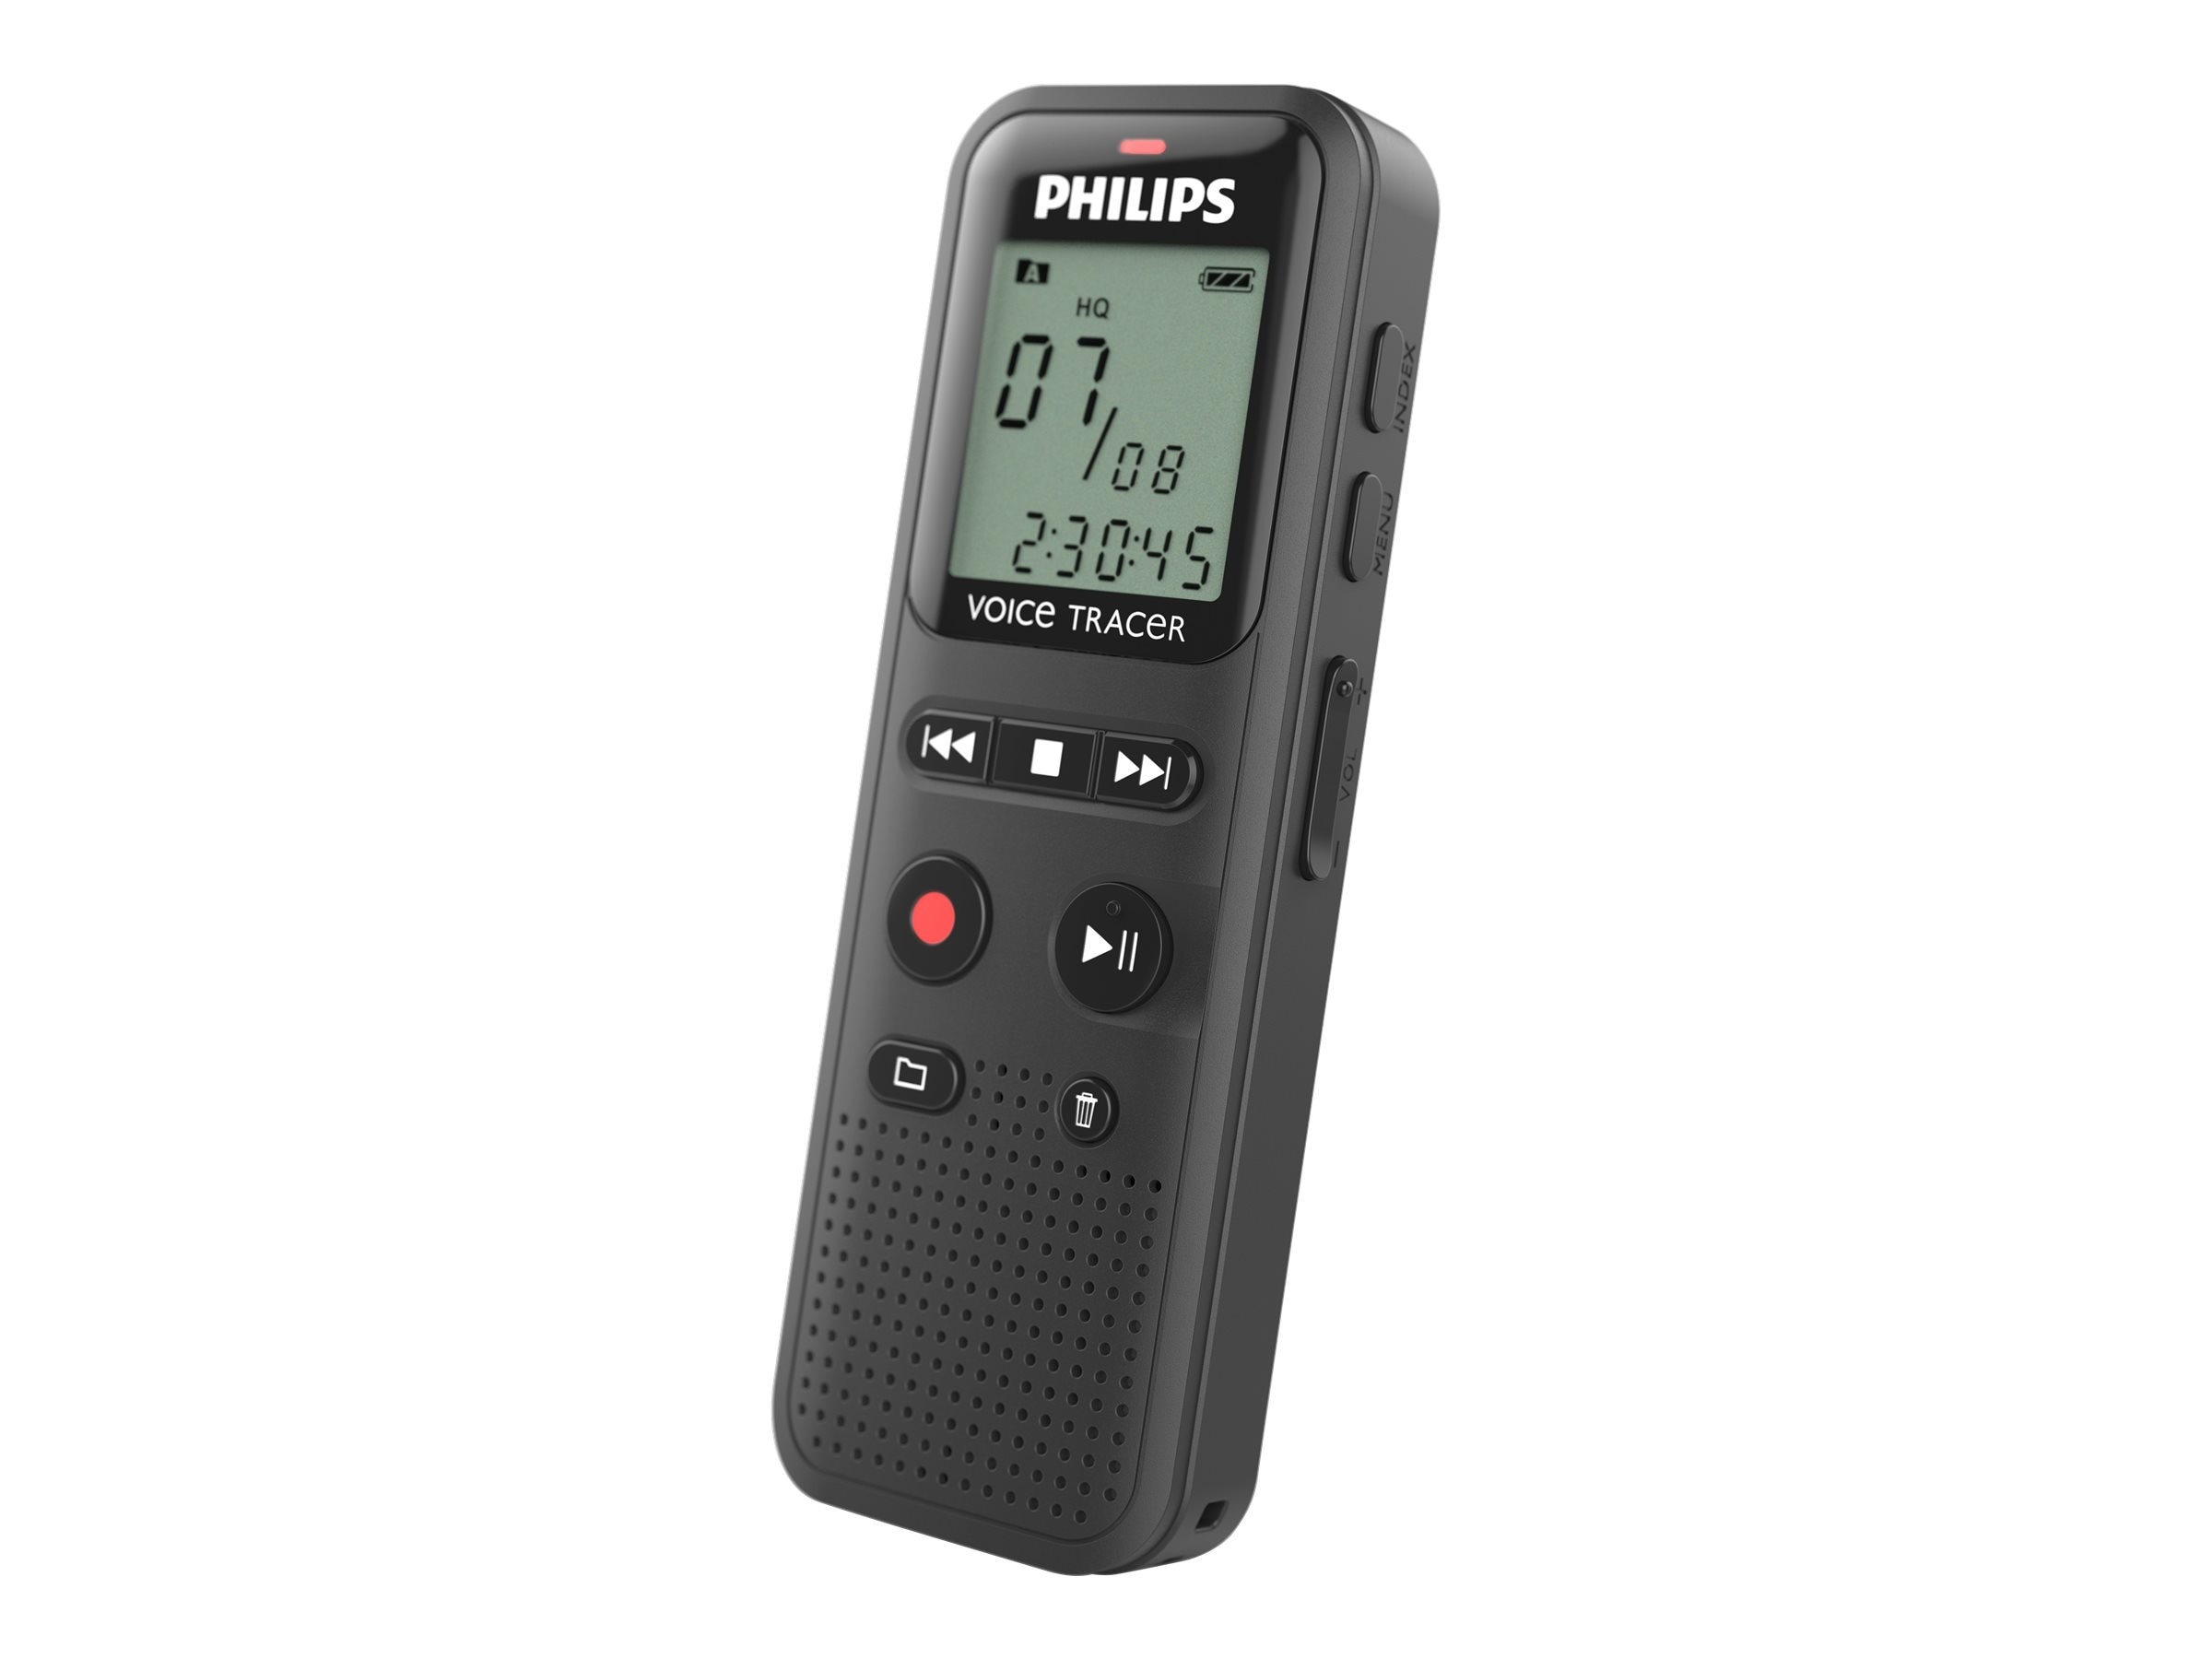 Philips DVT1150 Image 1